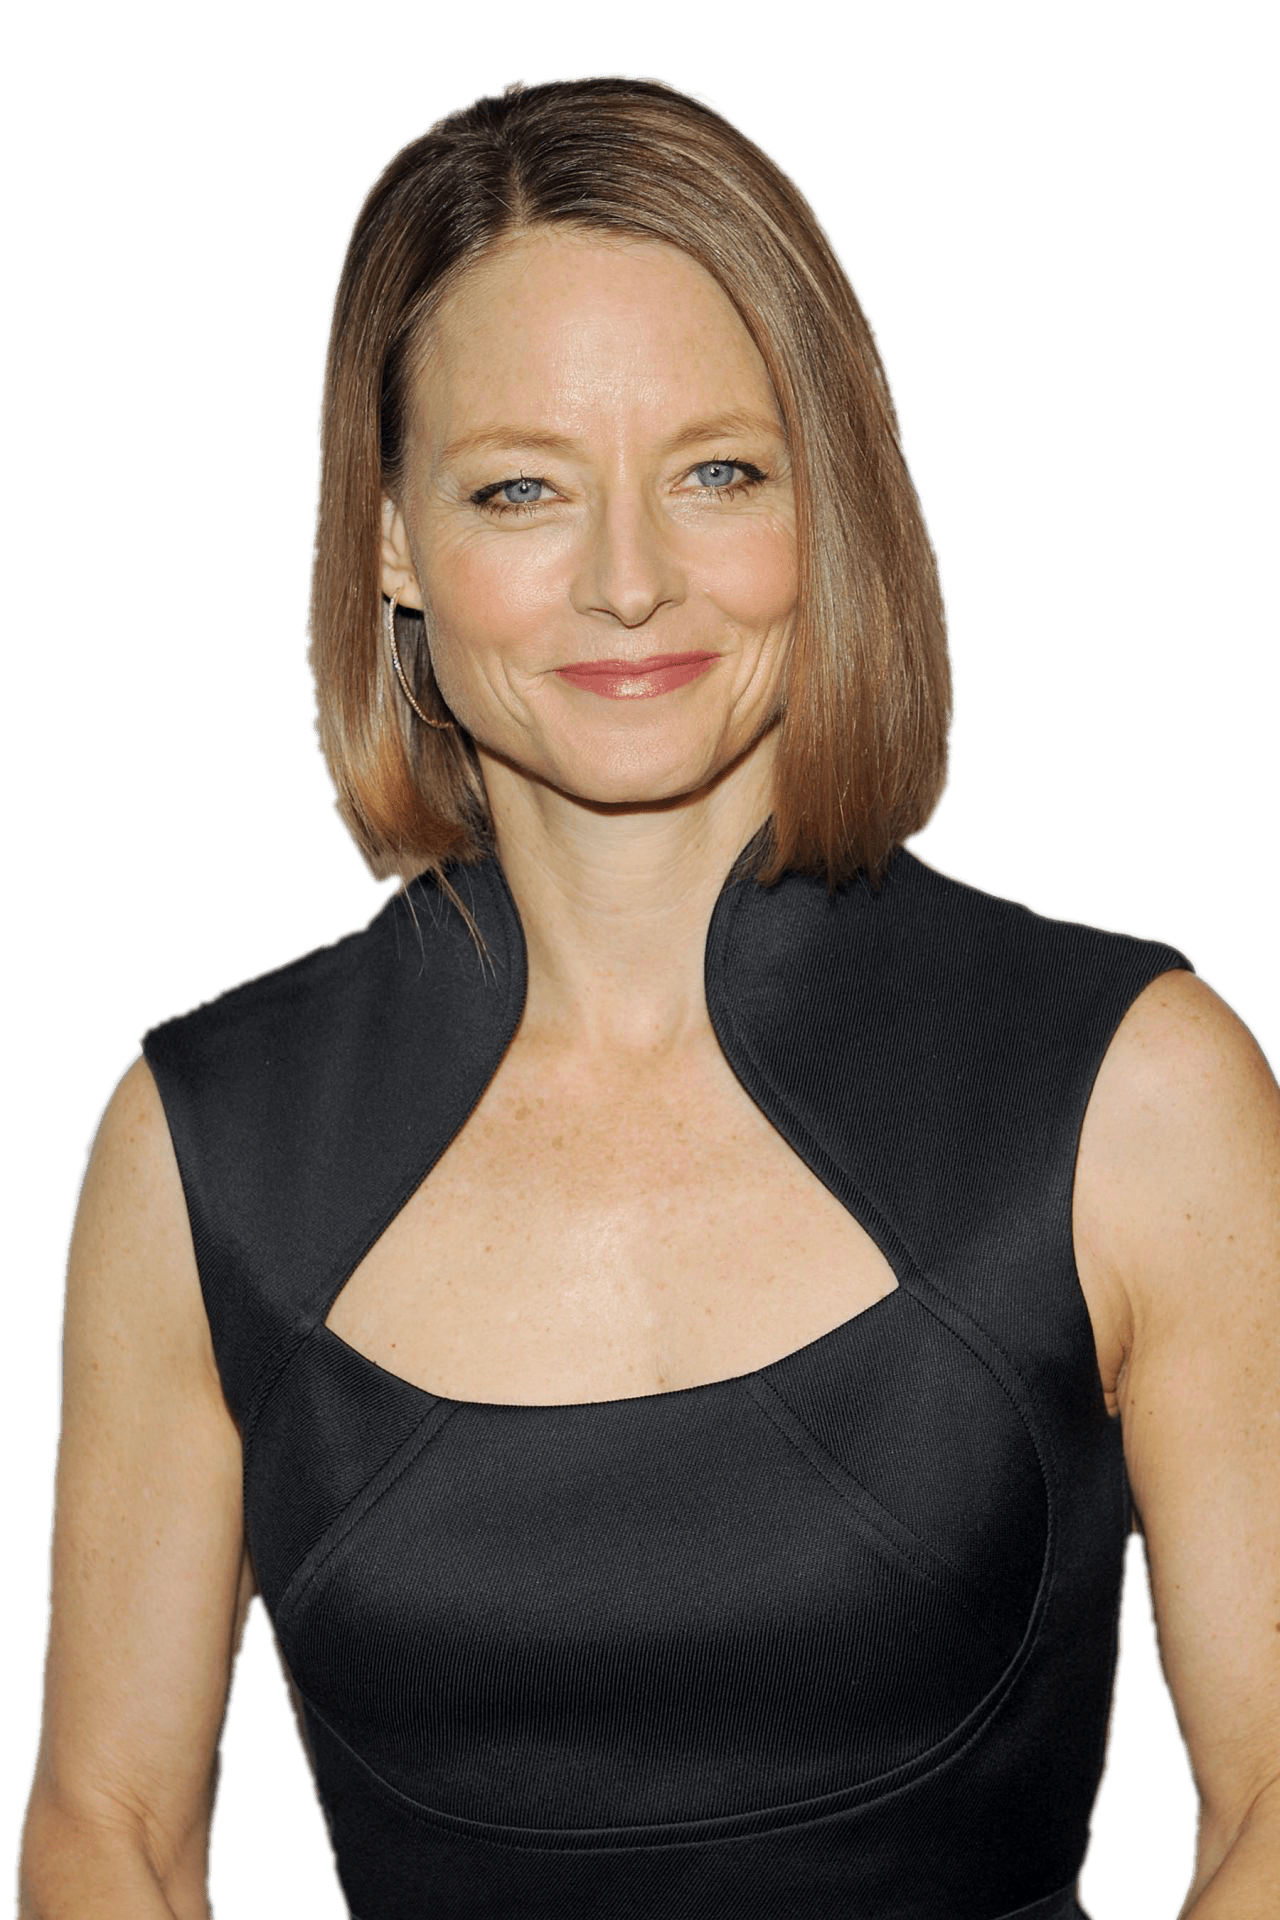 Jodie Foster Png - Jodie Foster transparent PNG - StickPNG